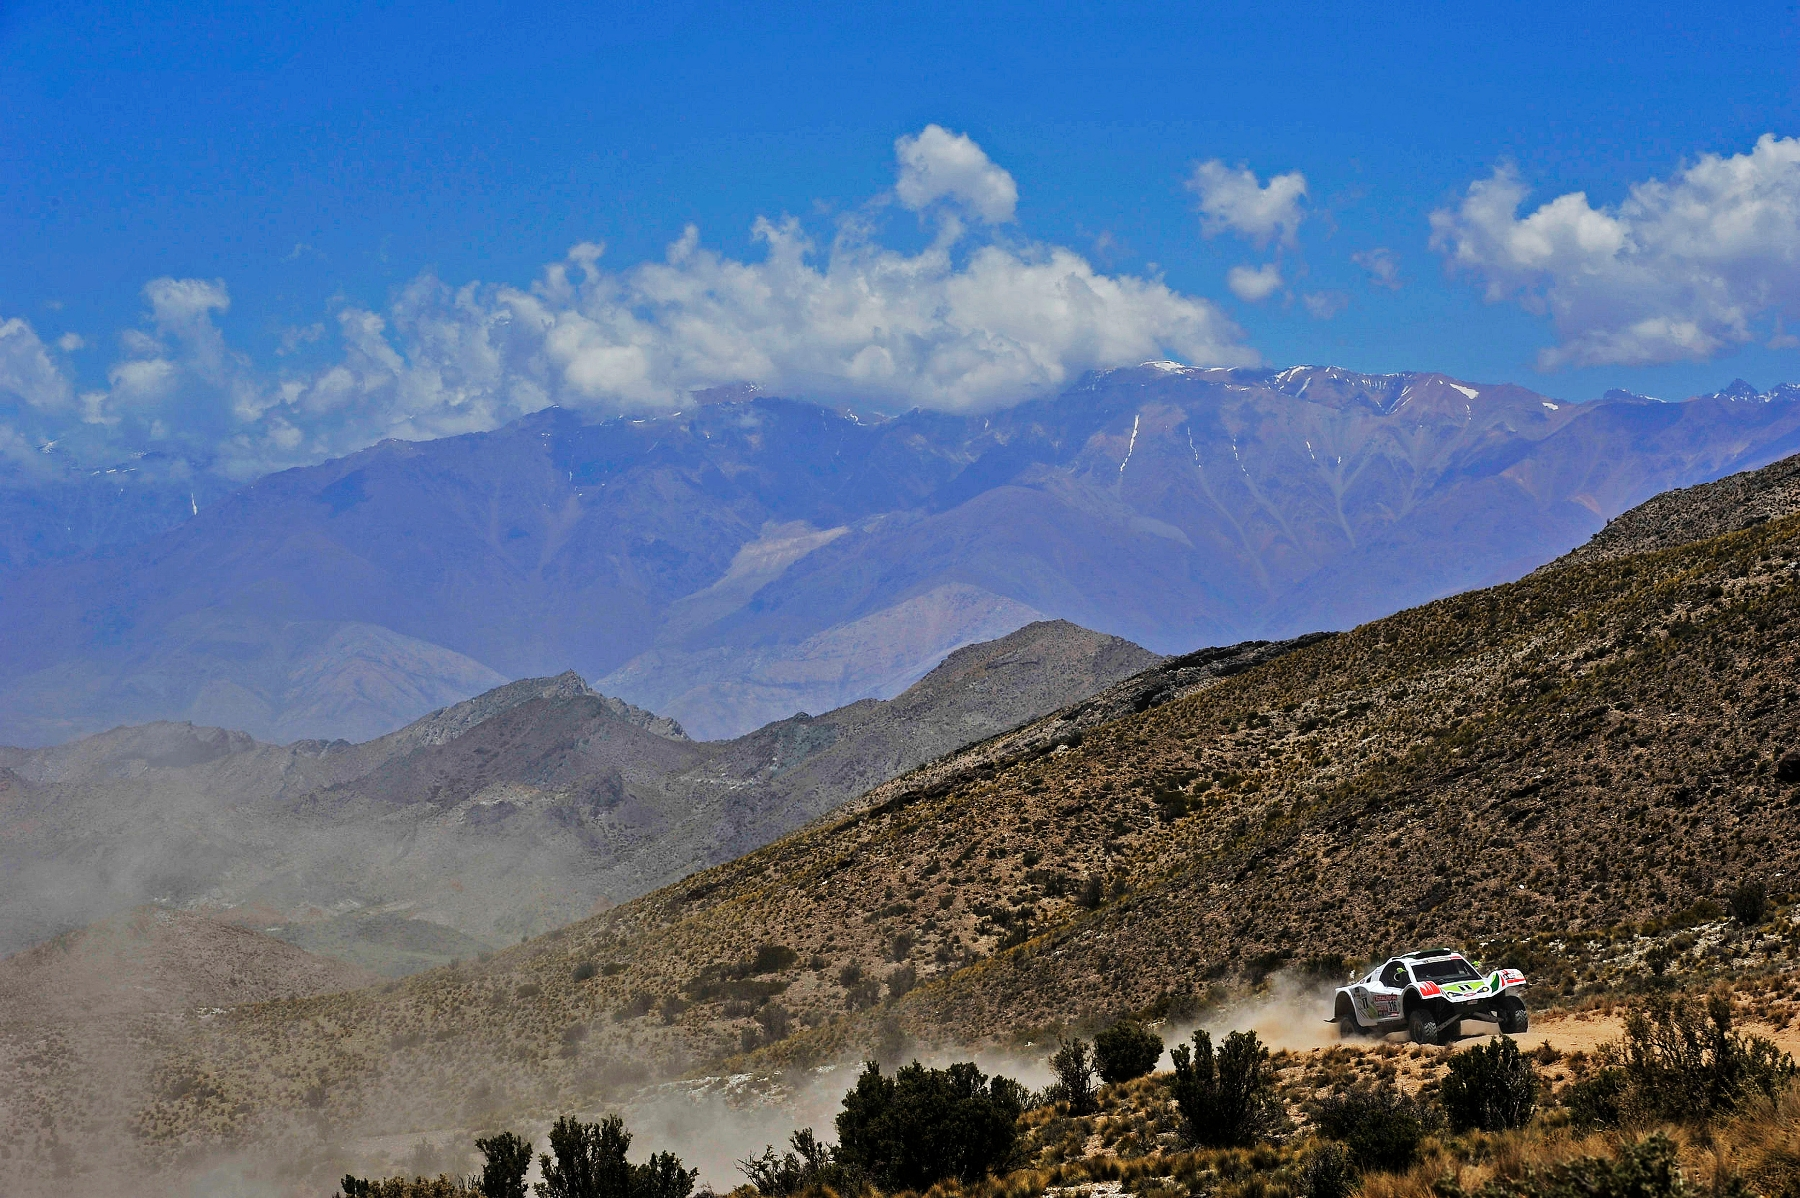 MOTORSPORT - DAKAR ARGENTINA CHILE PERU 2012 - STAGE 3 - SAN RAFAEL (ARG) TO SAN JUAN (ARG)  - 03/01/2012 - PHOTO: DPPI